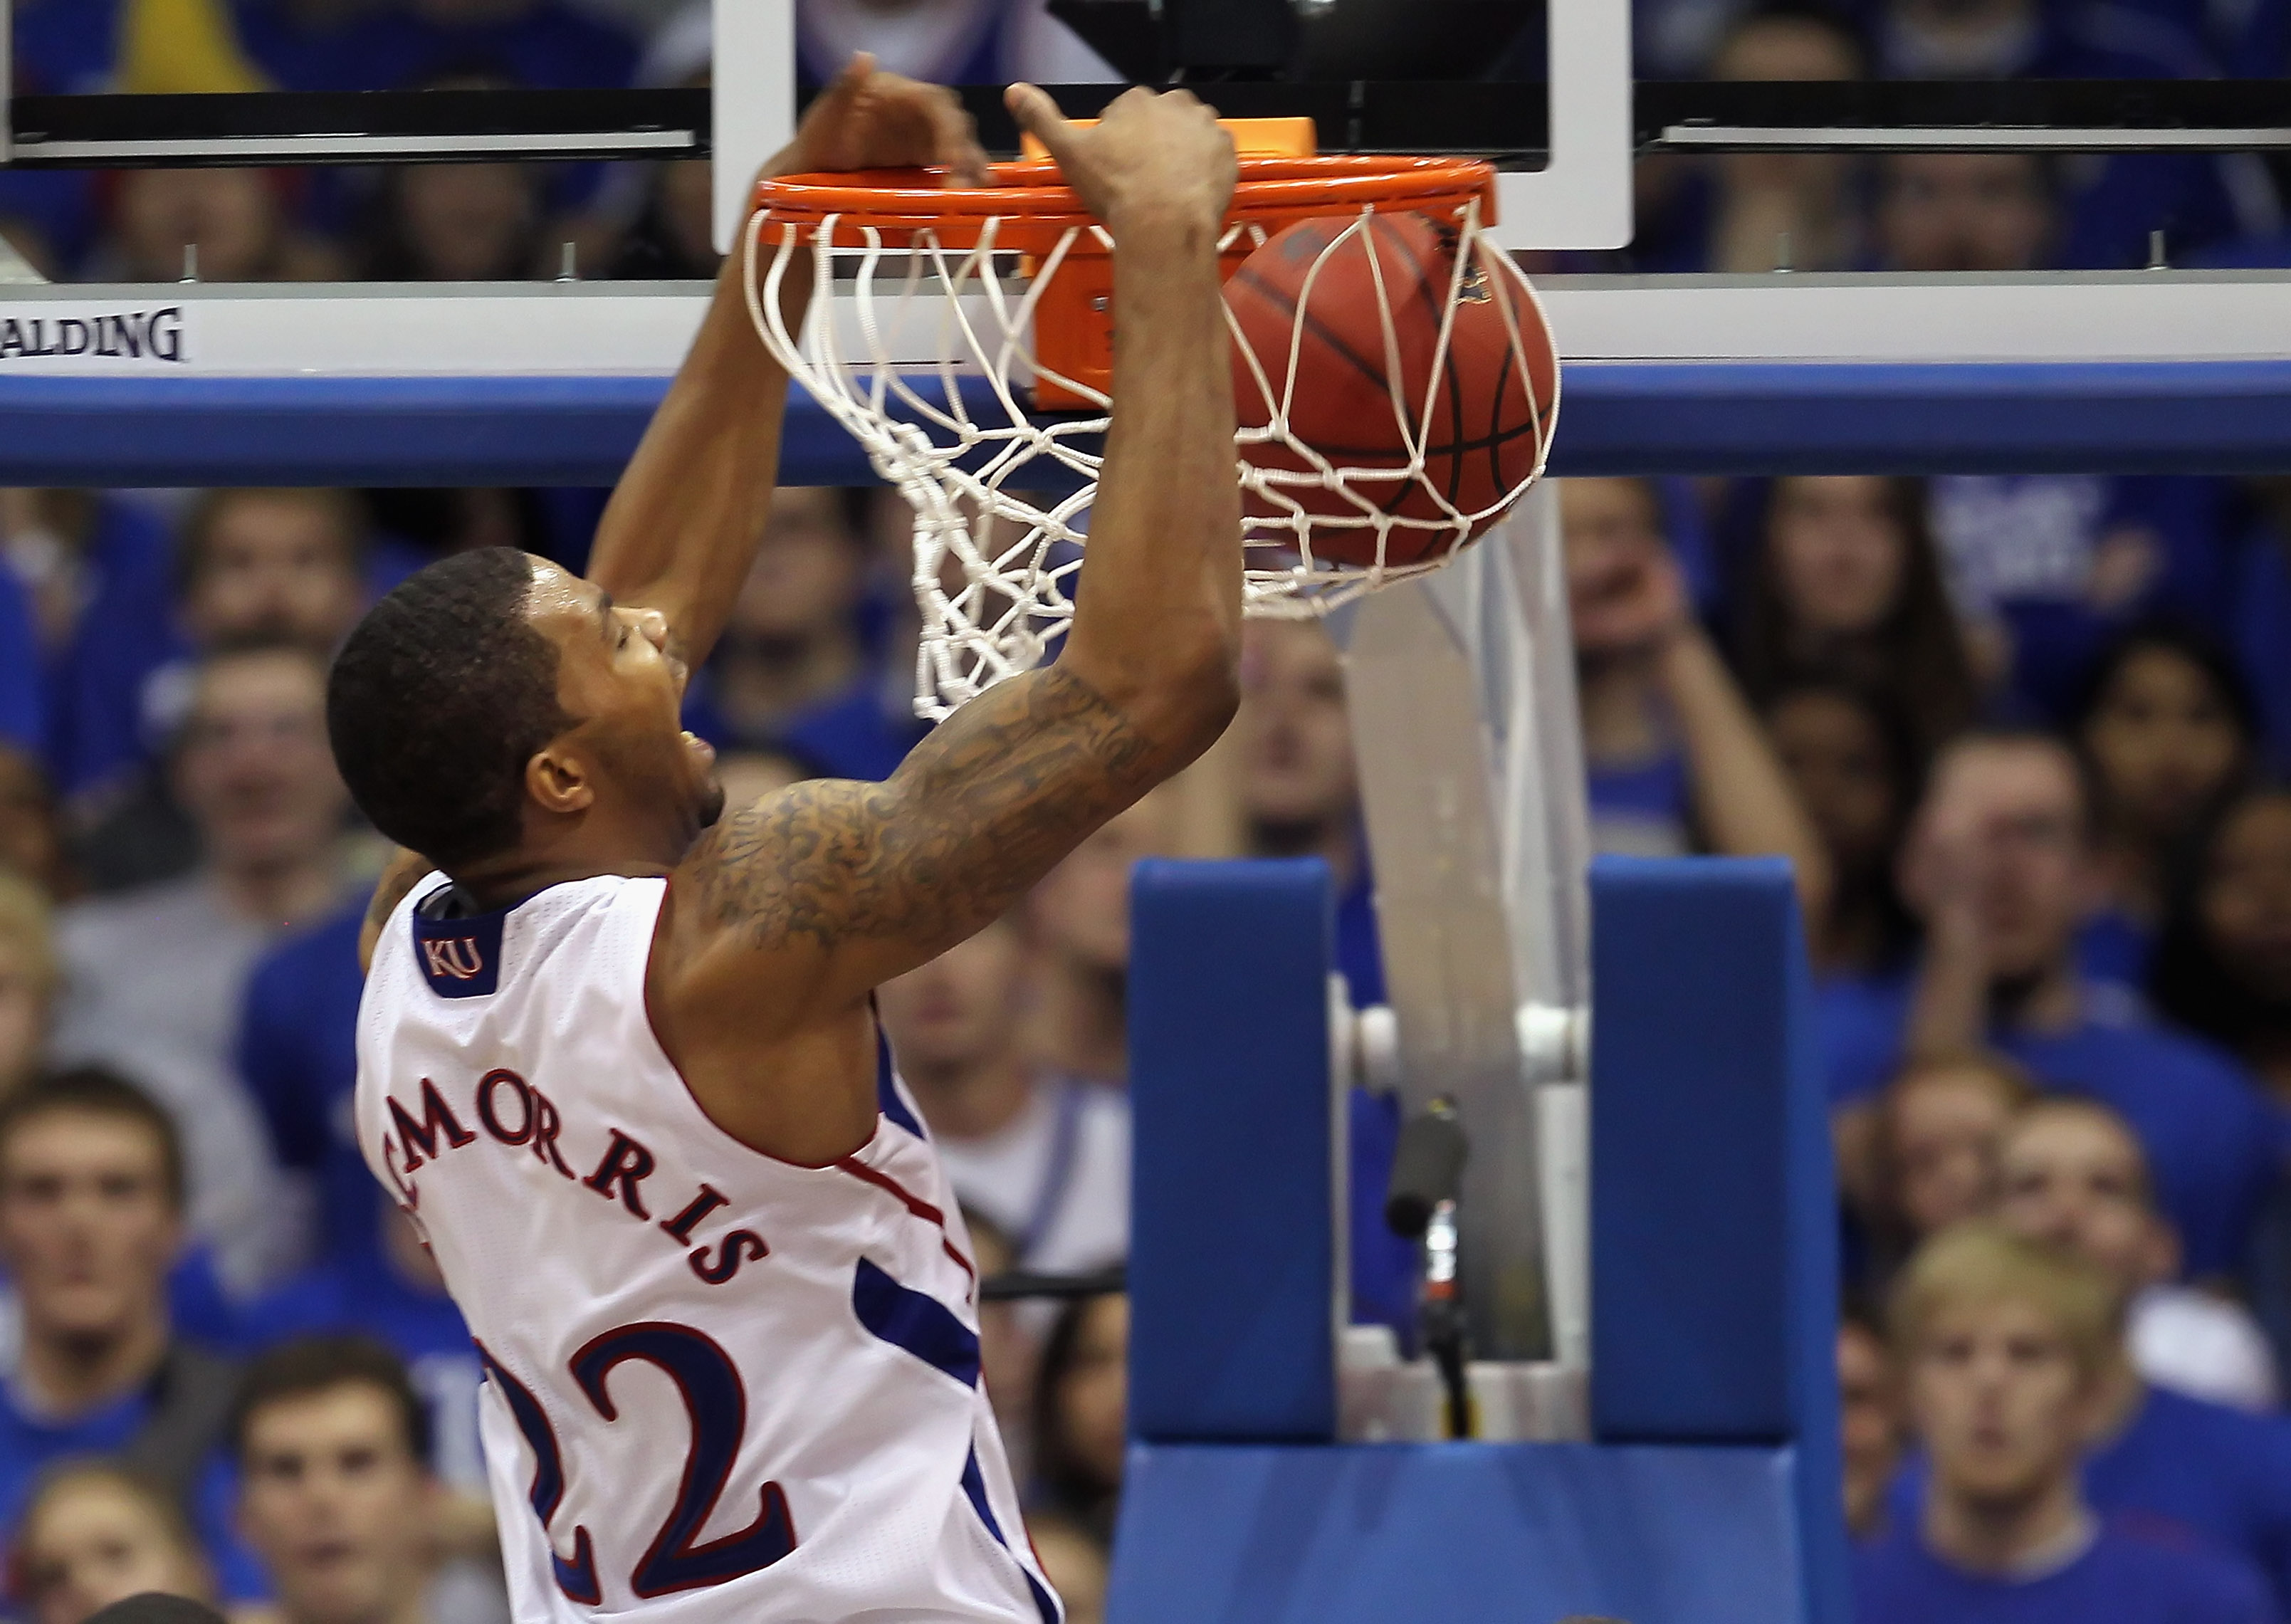 LAWRENCE, KS - JANUARY 15:  Marcus Morris #22 of the Kansas Jayhawks dunks during the game against the Nebraska Cornhuskers on January 15, 2011 at Allen Fieldhouse in Lawrence, Kansas.  (Photo by Jamie Squire/Getty Images)